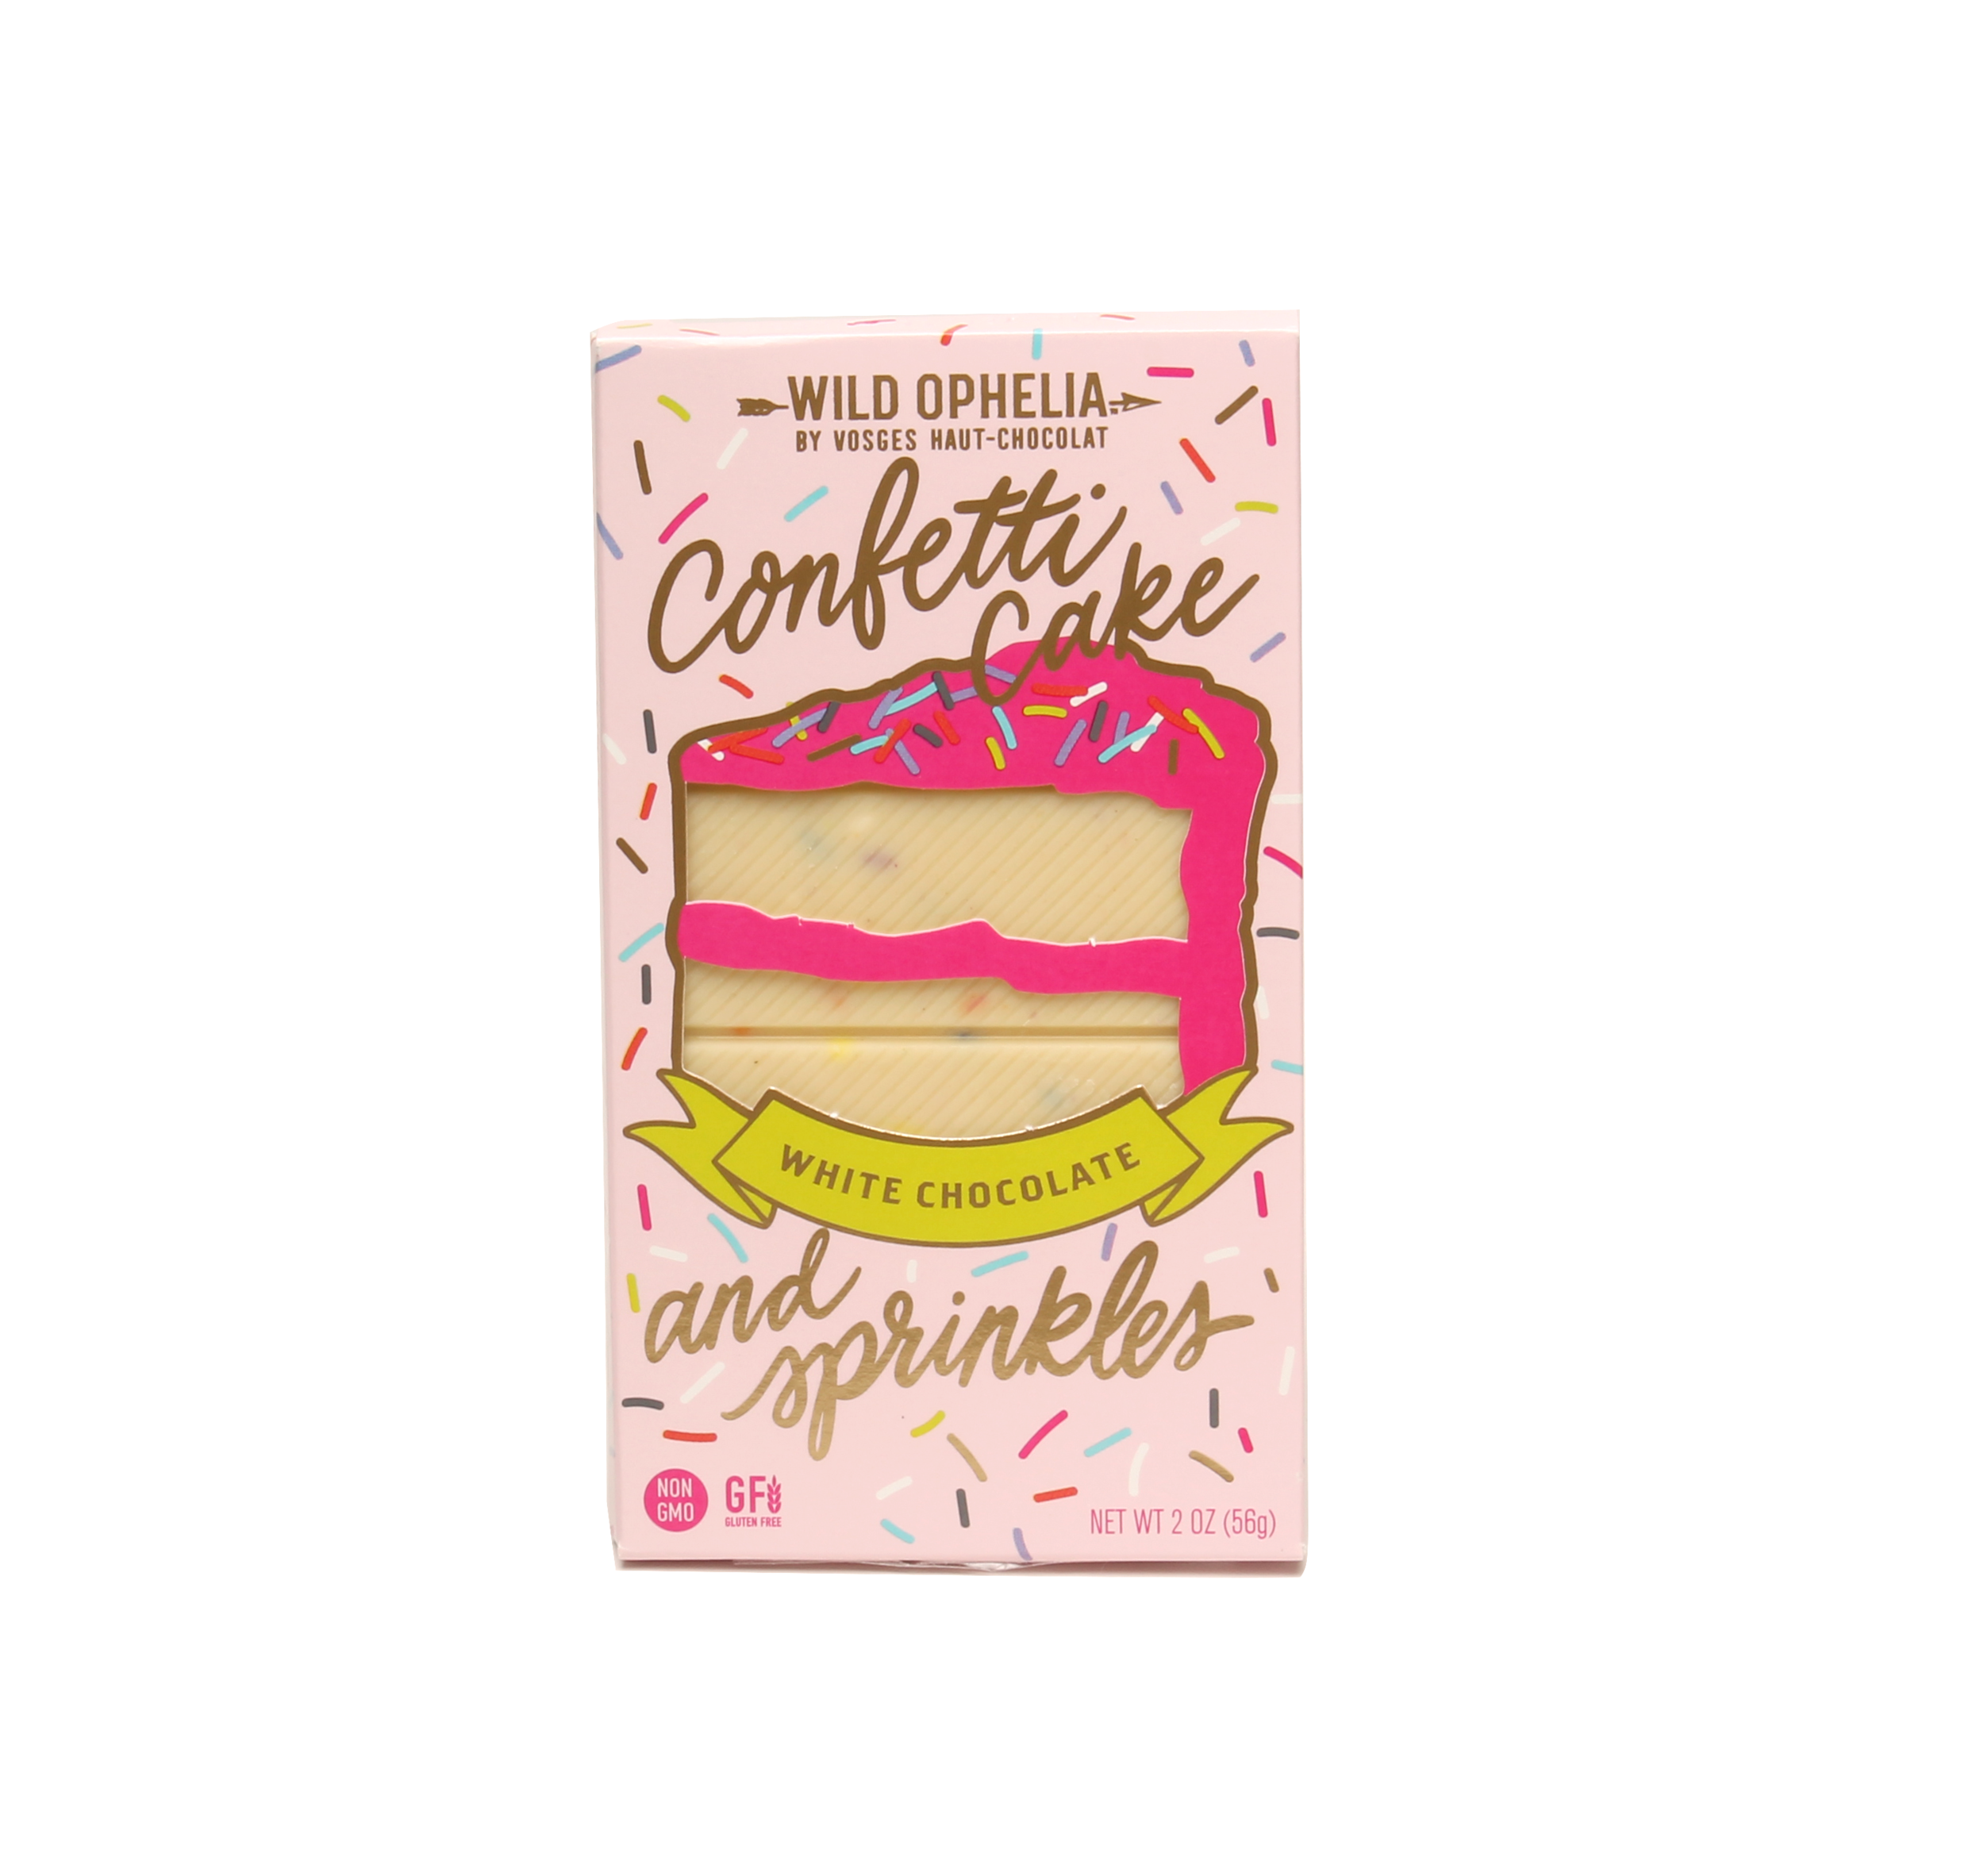 CONFETTI CAKE & SPRINKLES    This badass bar is made with passion and purpose and magical, all natural sprinkles, white chocolate and bits of gluten-free vanilla birthday cake.